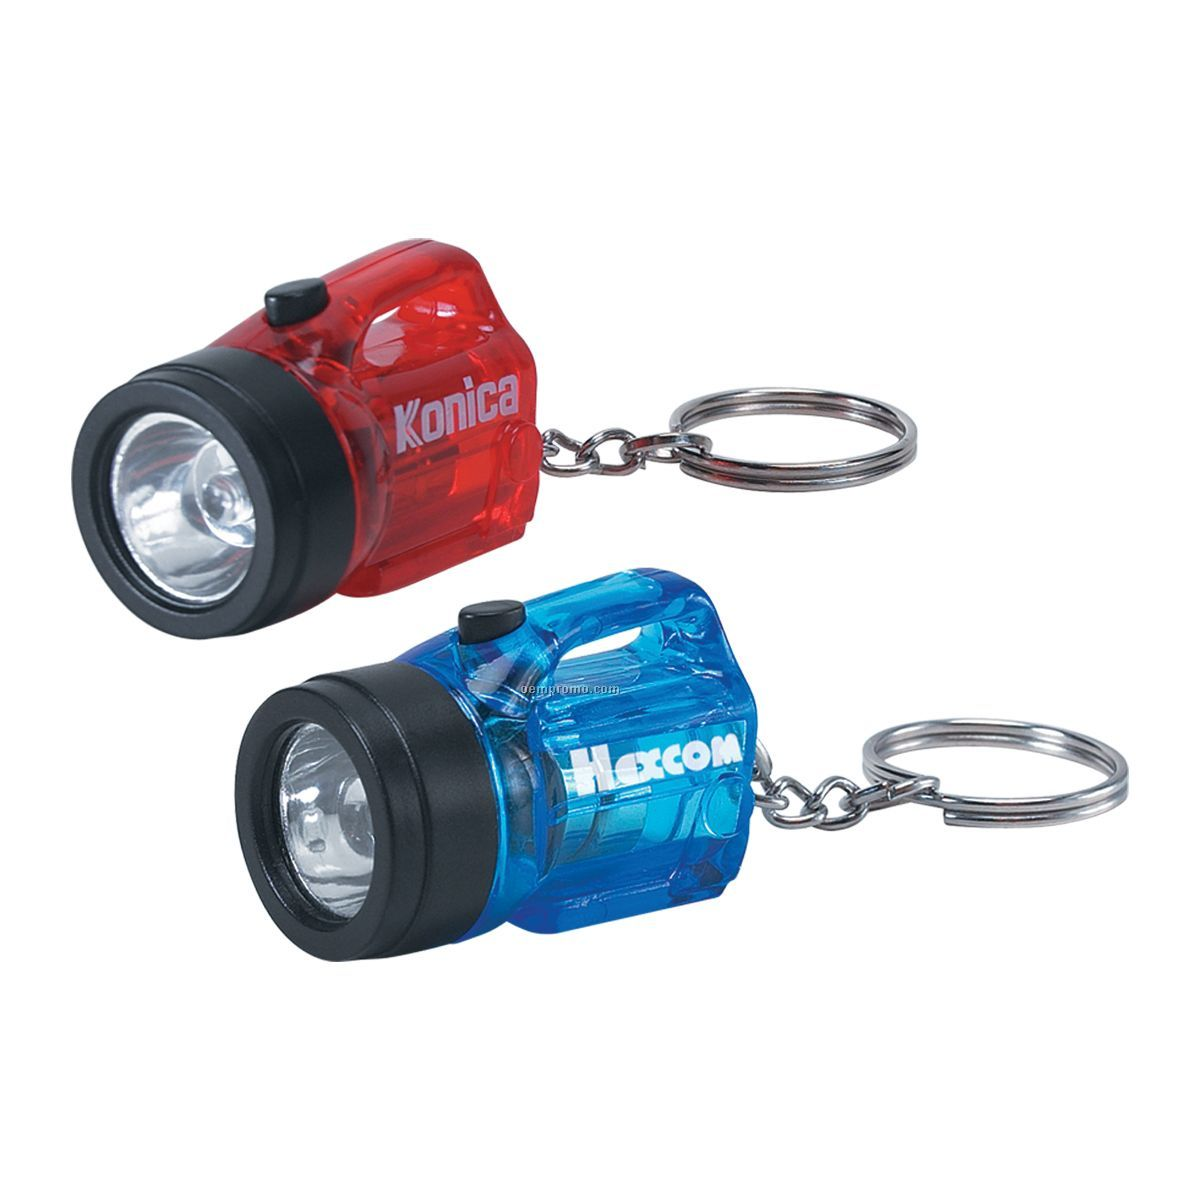 Mini Lantern W/ Key Ring